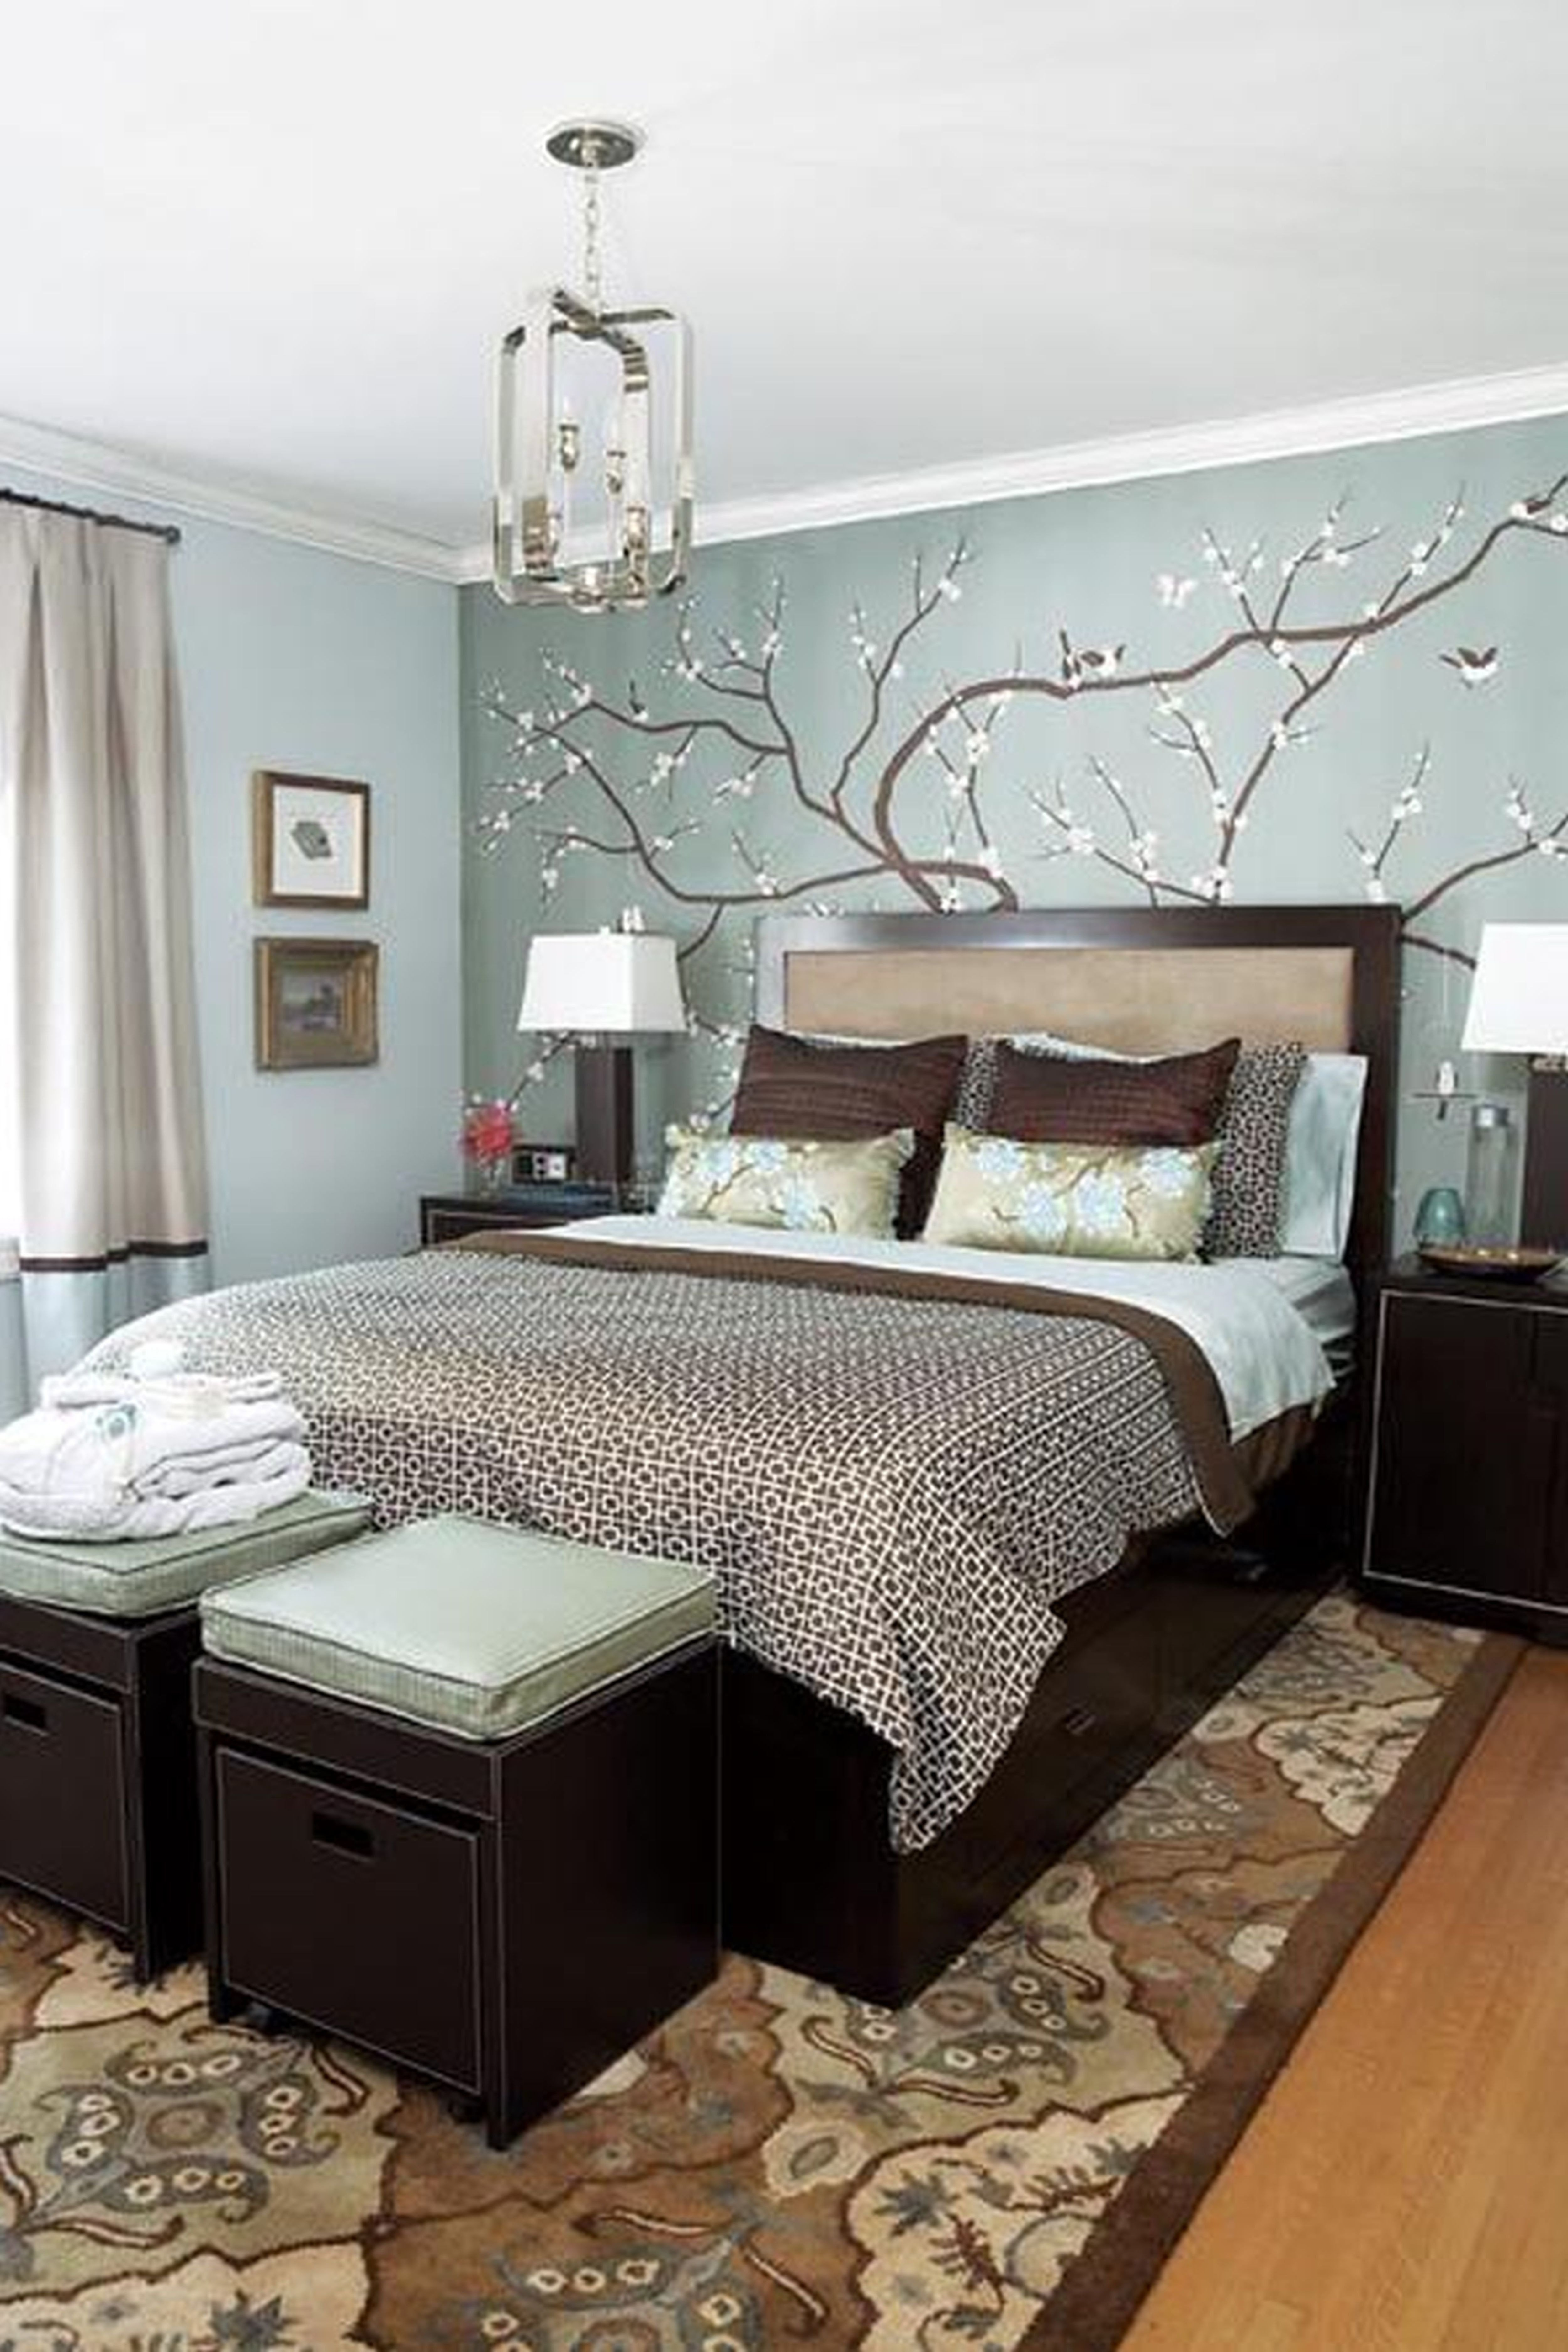 Bedroom Colors with Brown Furniture Awesome Everything You Need to Know About Home Improvement